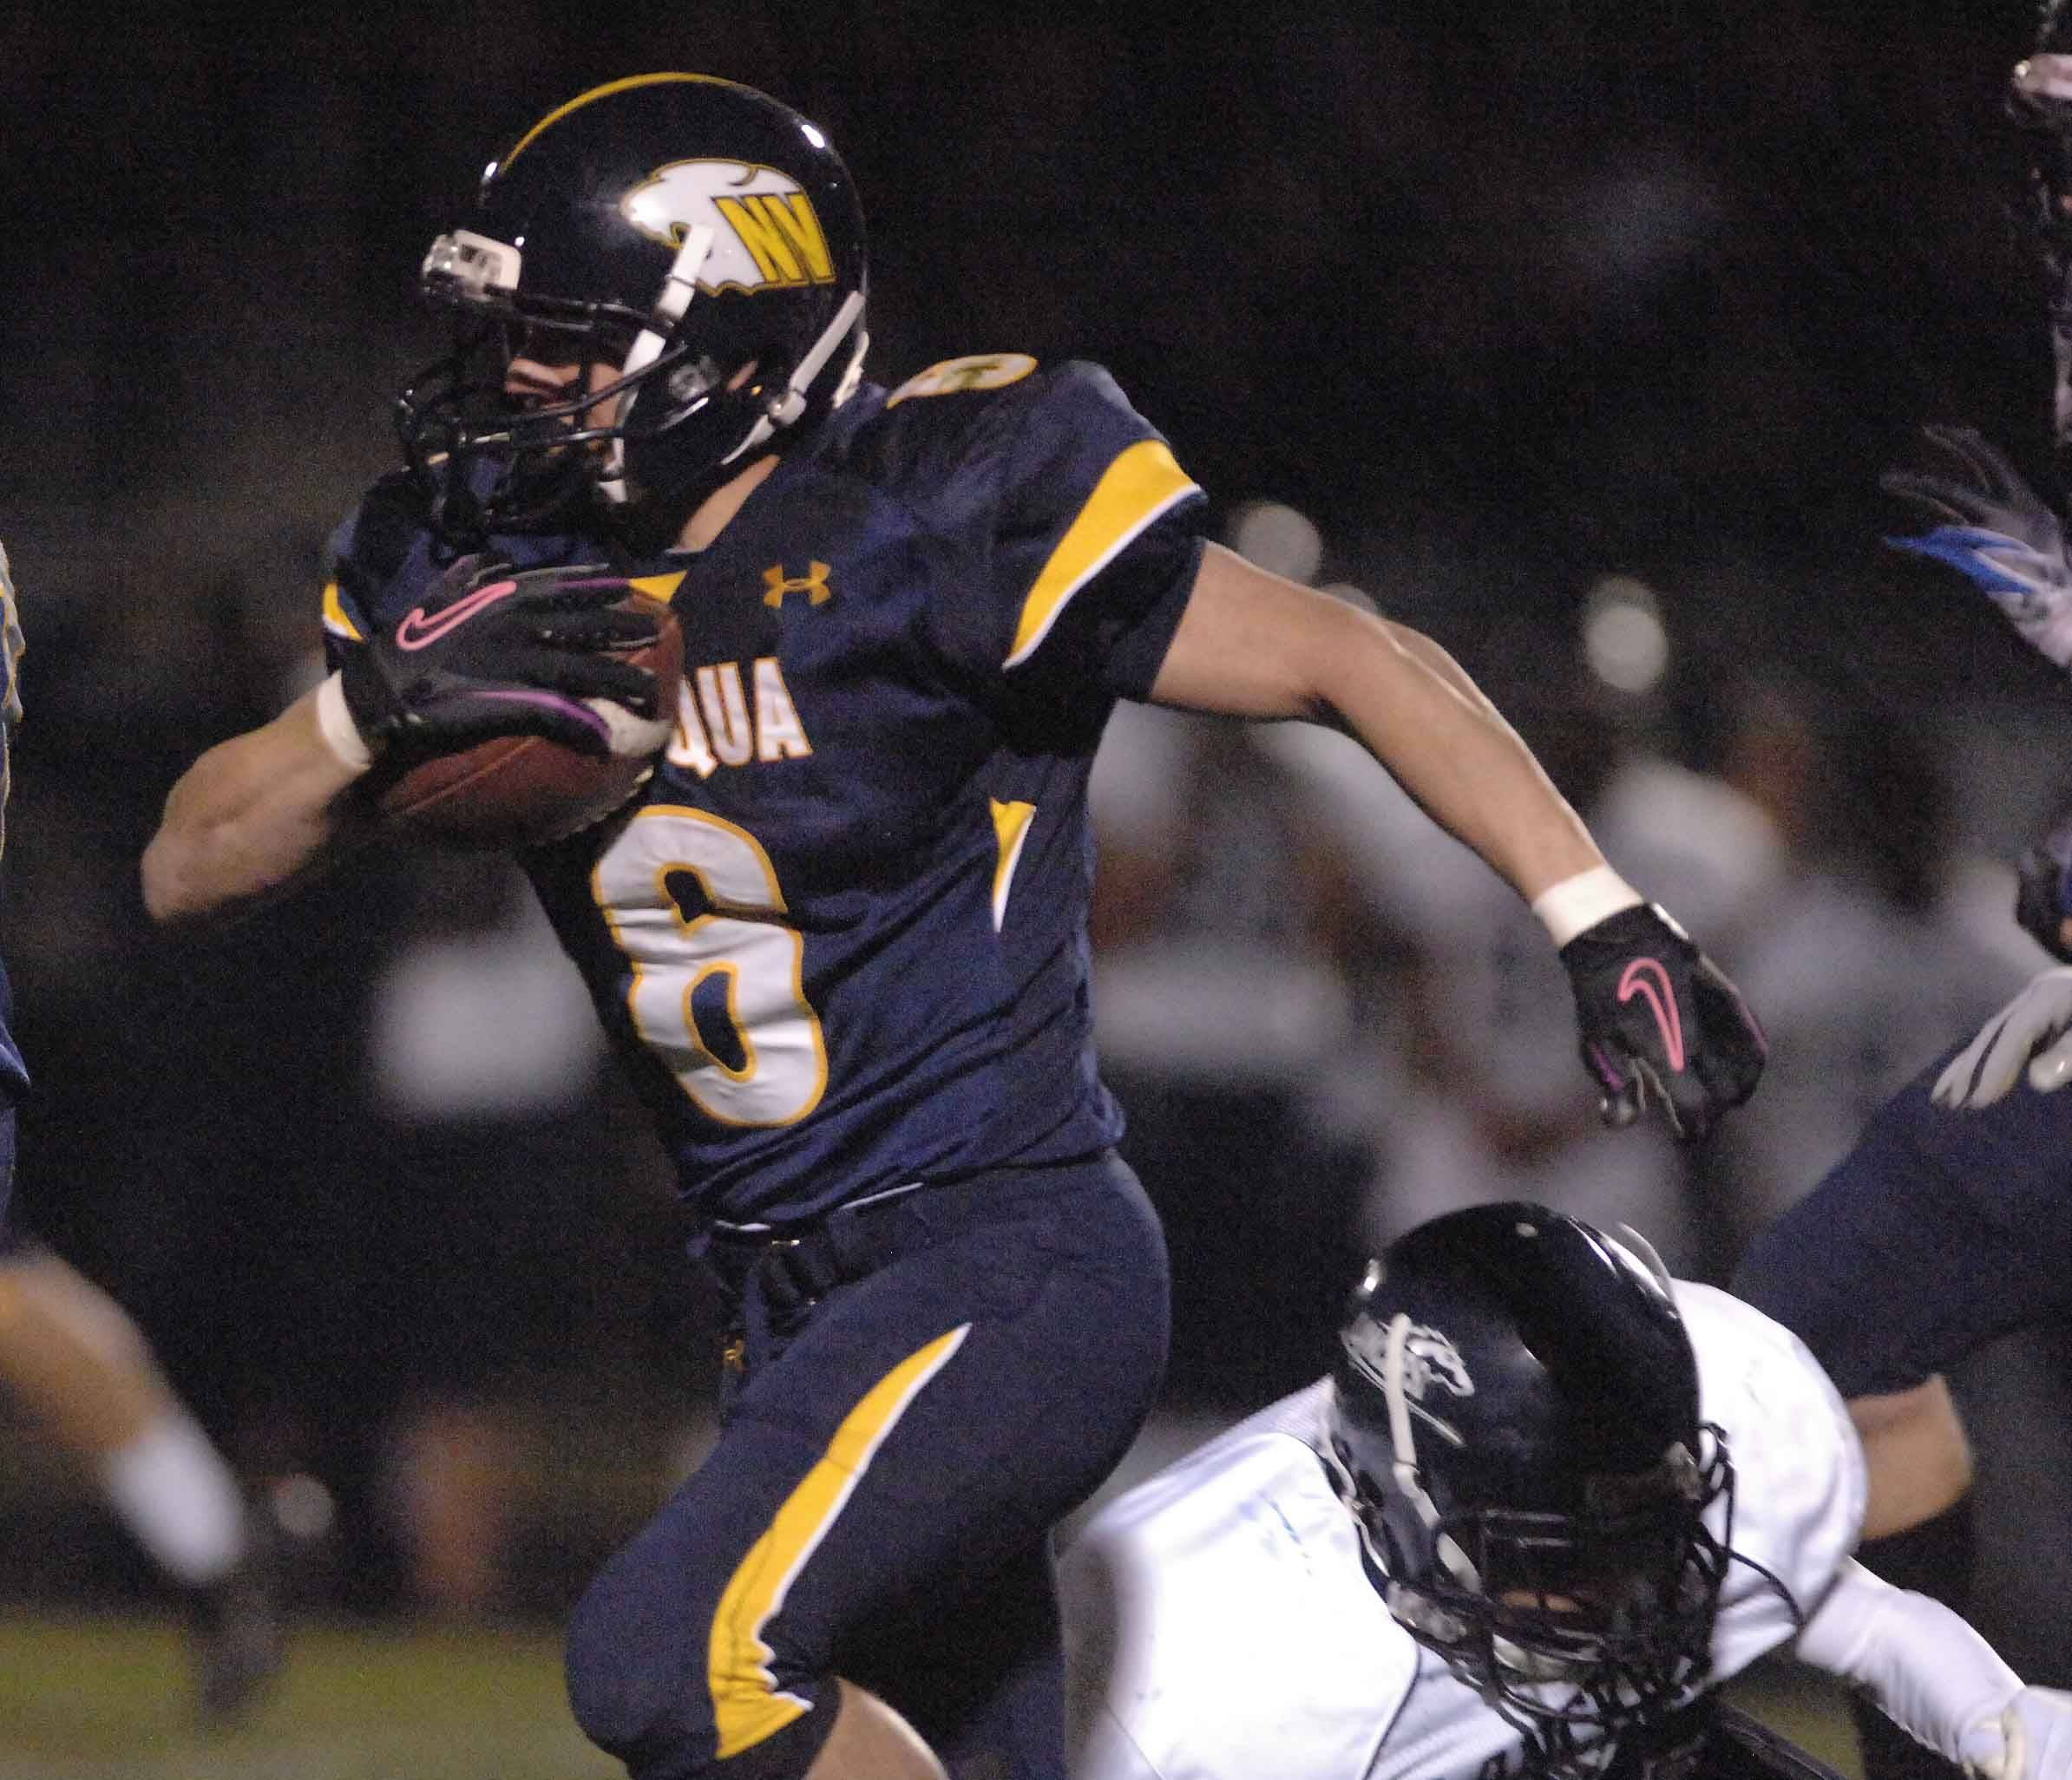 WEEK 9- Trent Snyder of Neuqua Valley runs the ball.